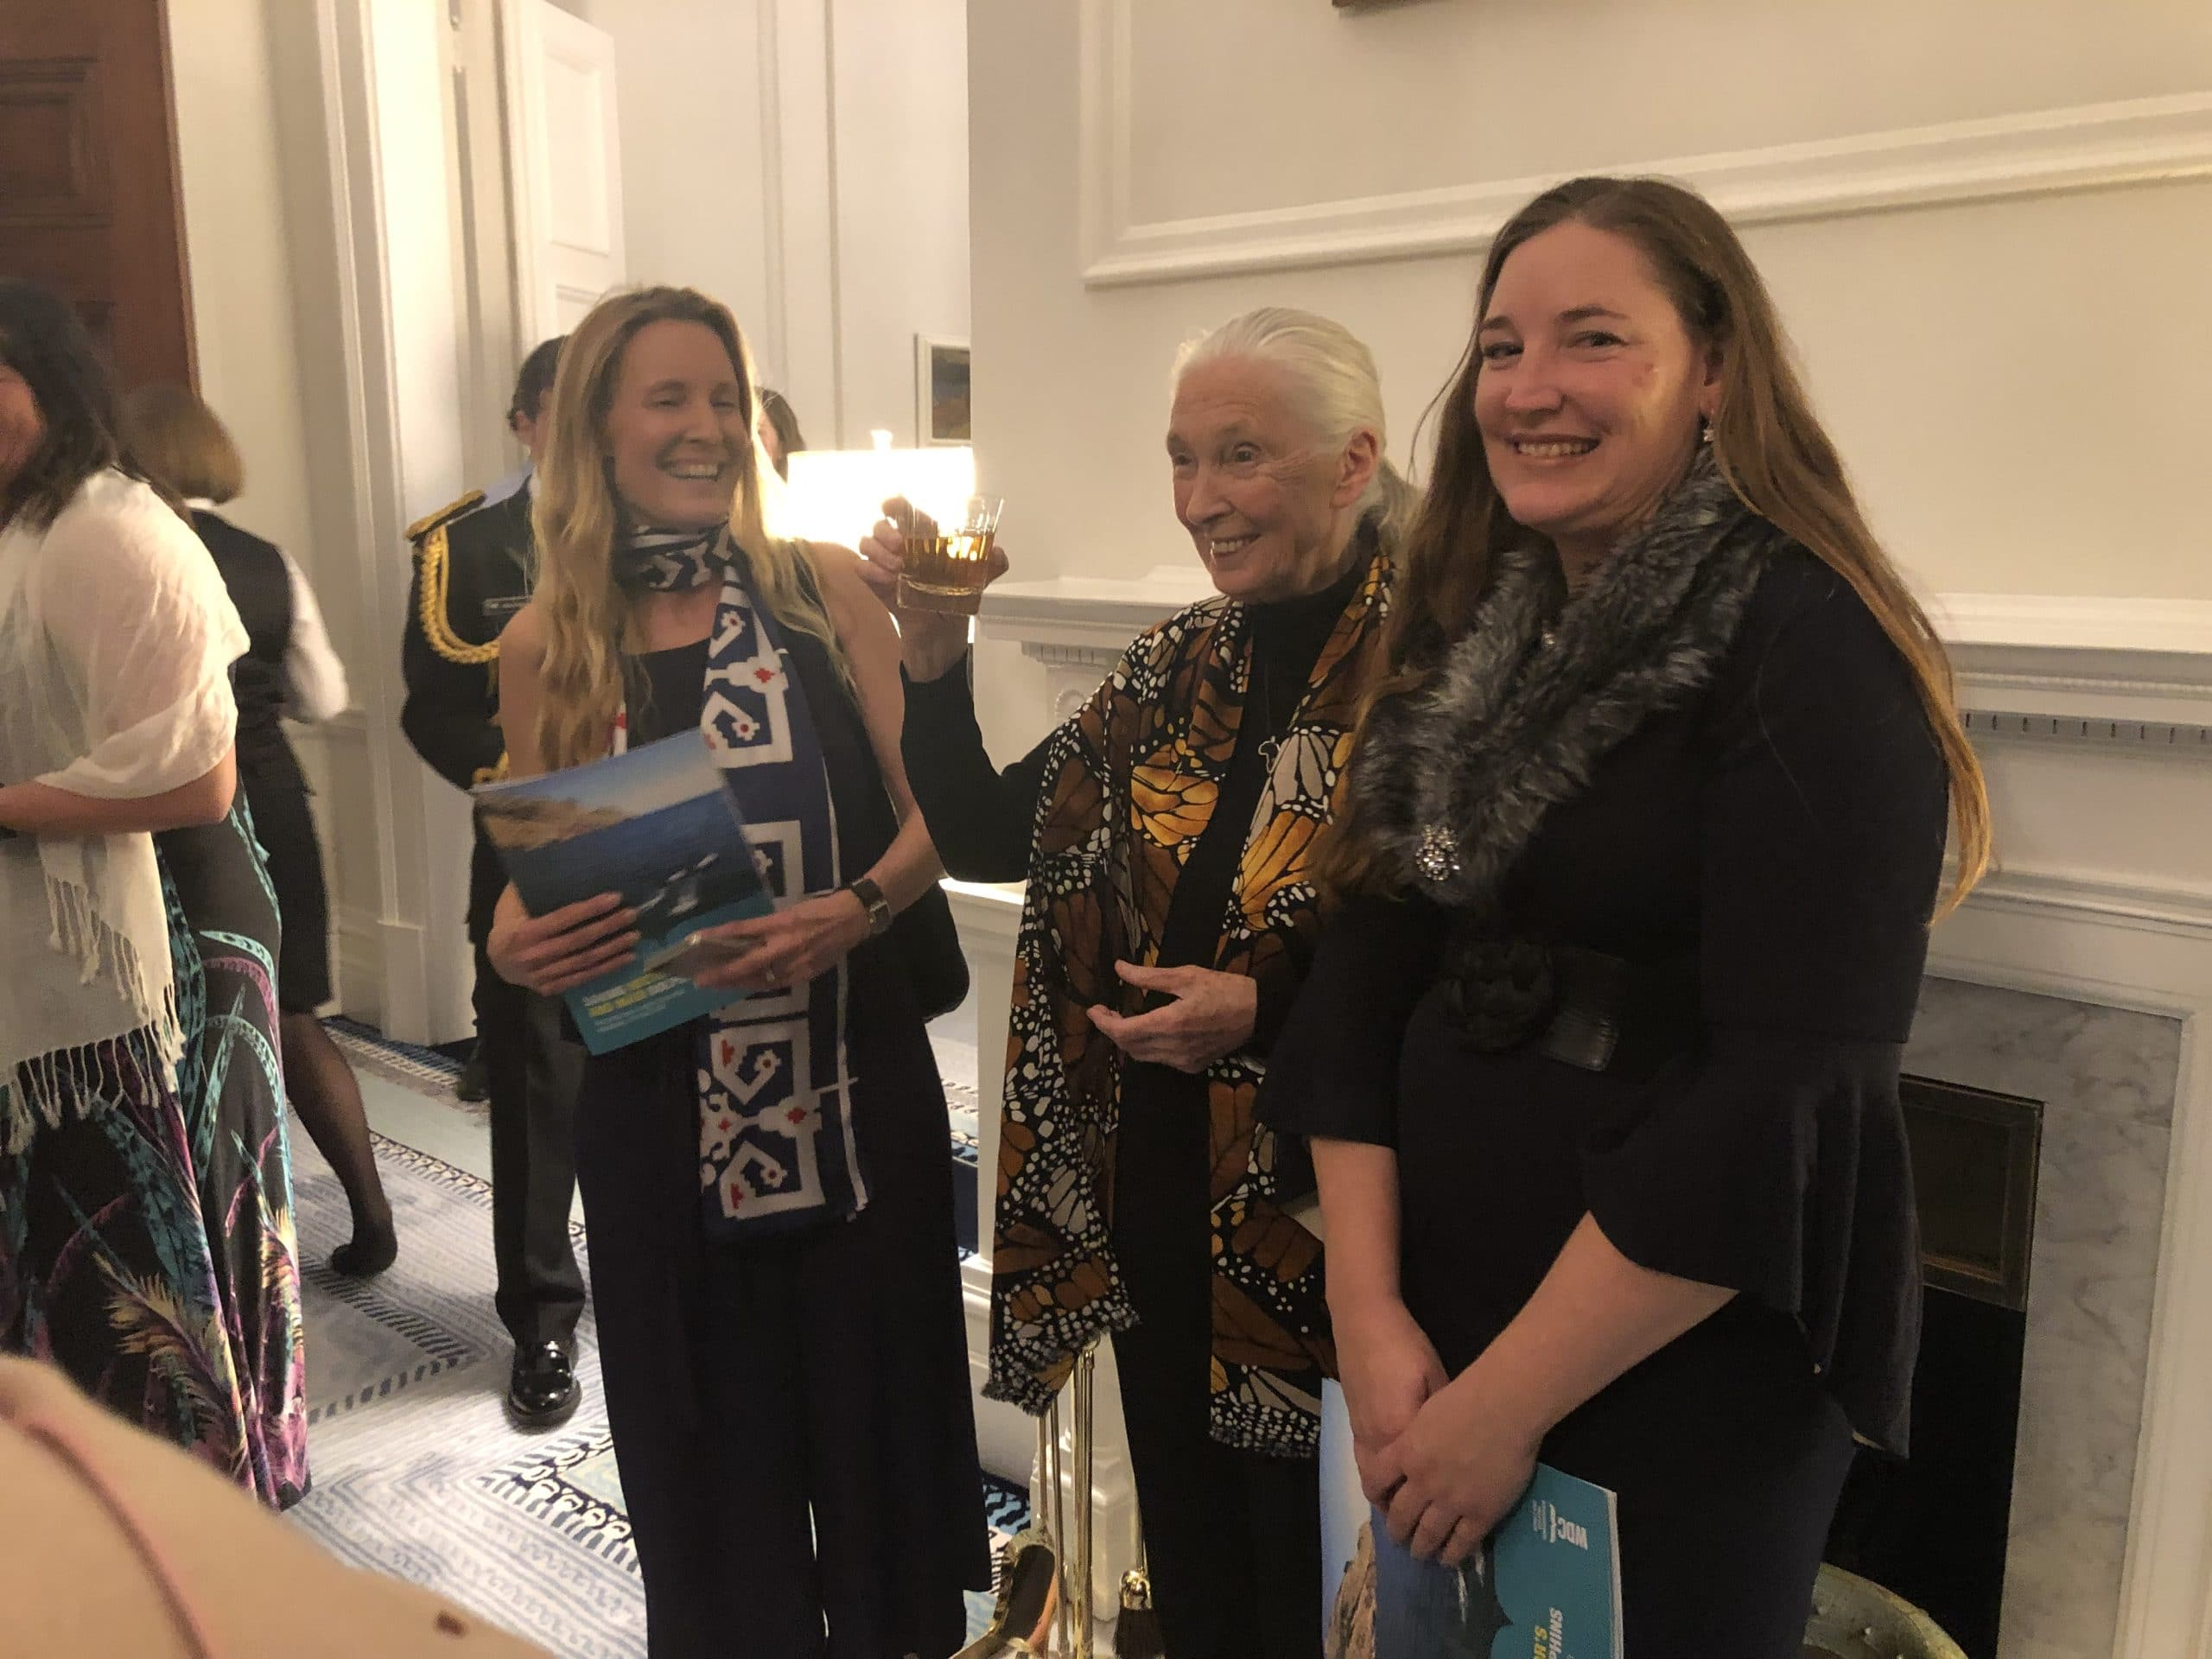 WDC's Philippa Brakes and Gemma McGrath talk with Jane Goodall about our campaign to save New Zealand dolphins